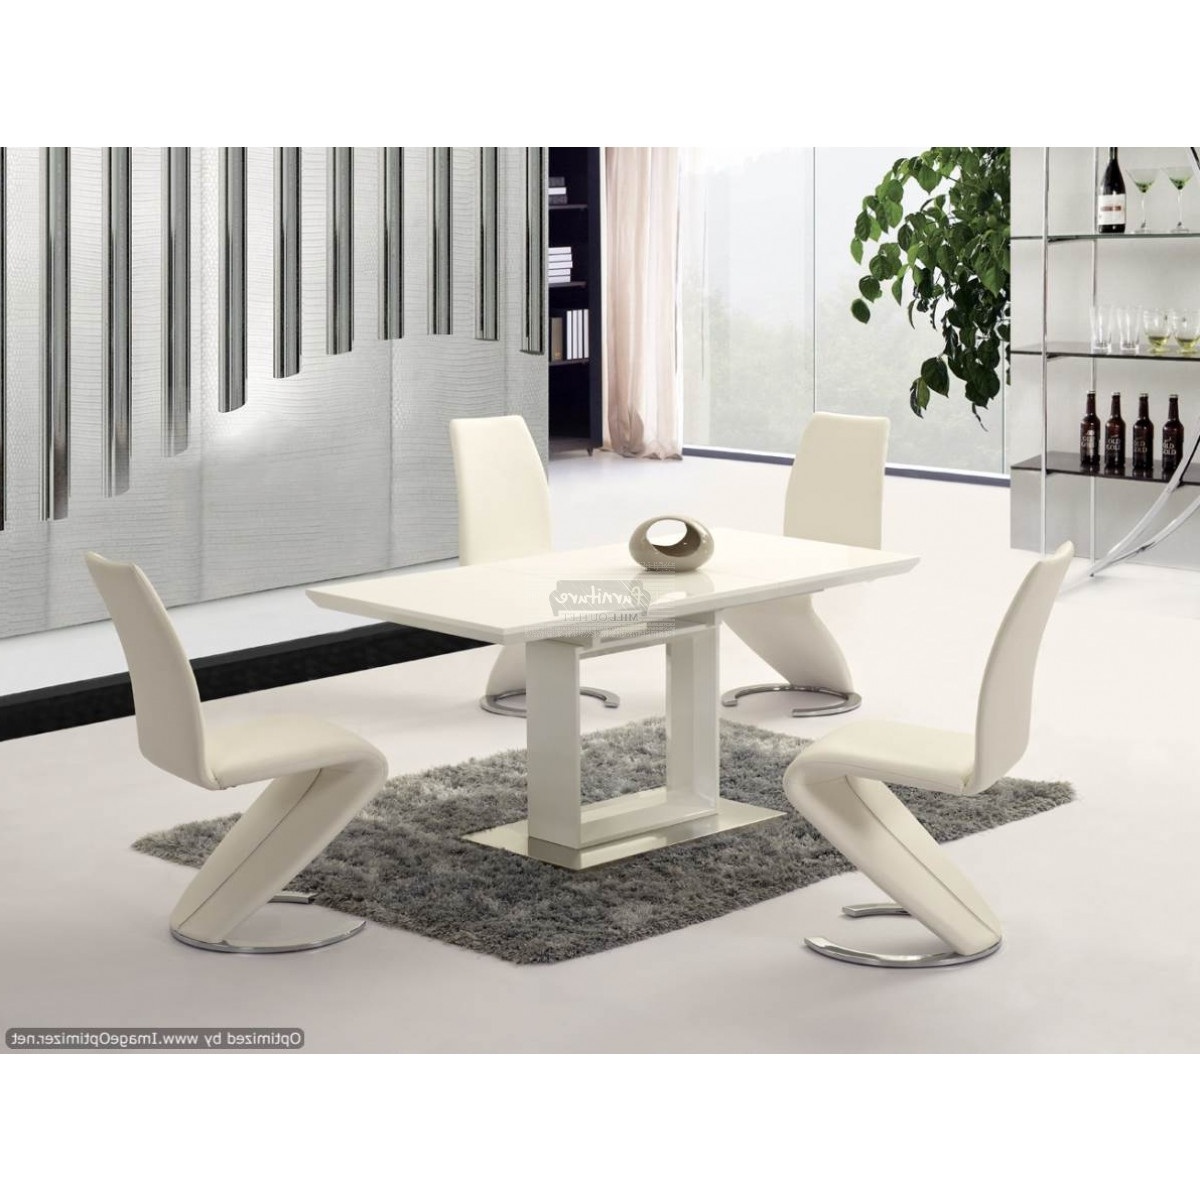 Most Recent White High Gloss Dining Tables 6 Chairs In Space White High Gloss Extending Dining Table – 120Cm To 160Cm (View 11 of 25)